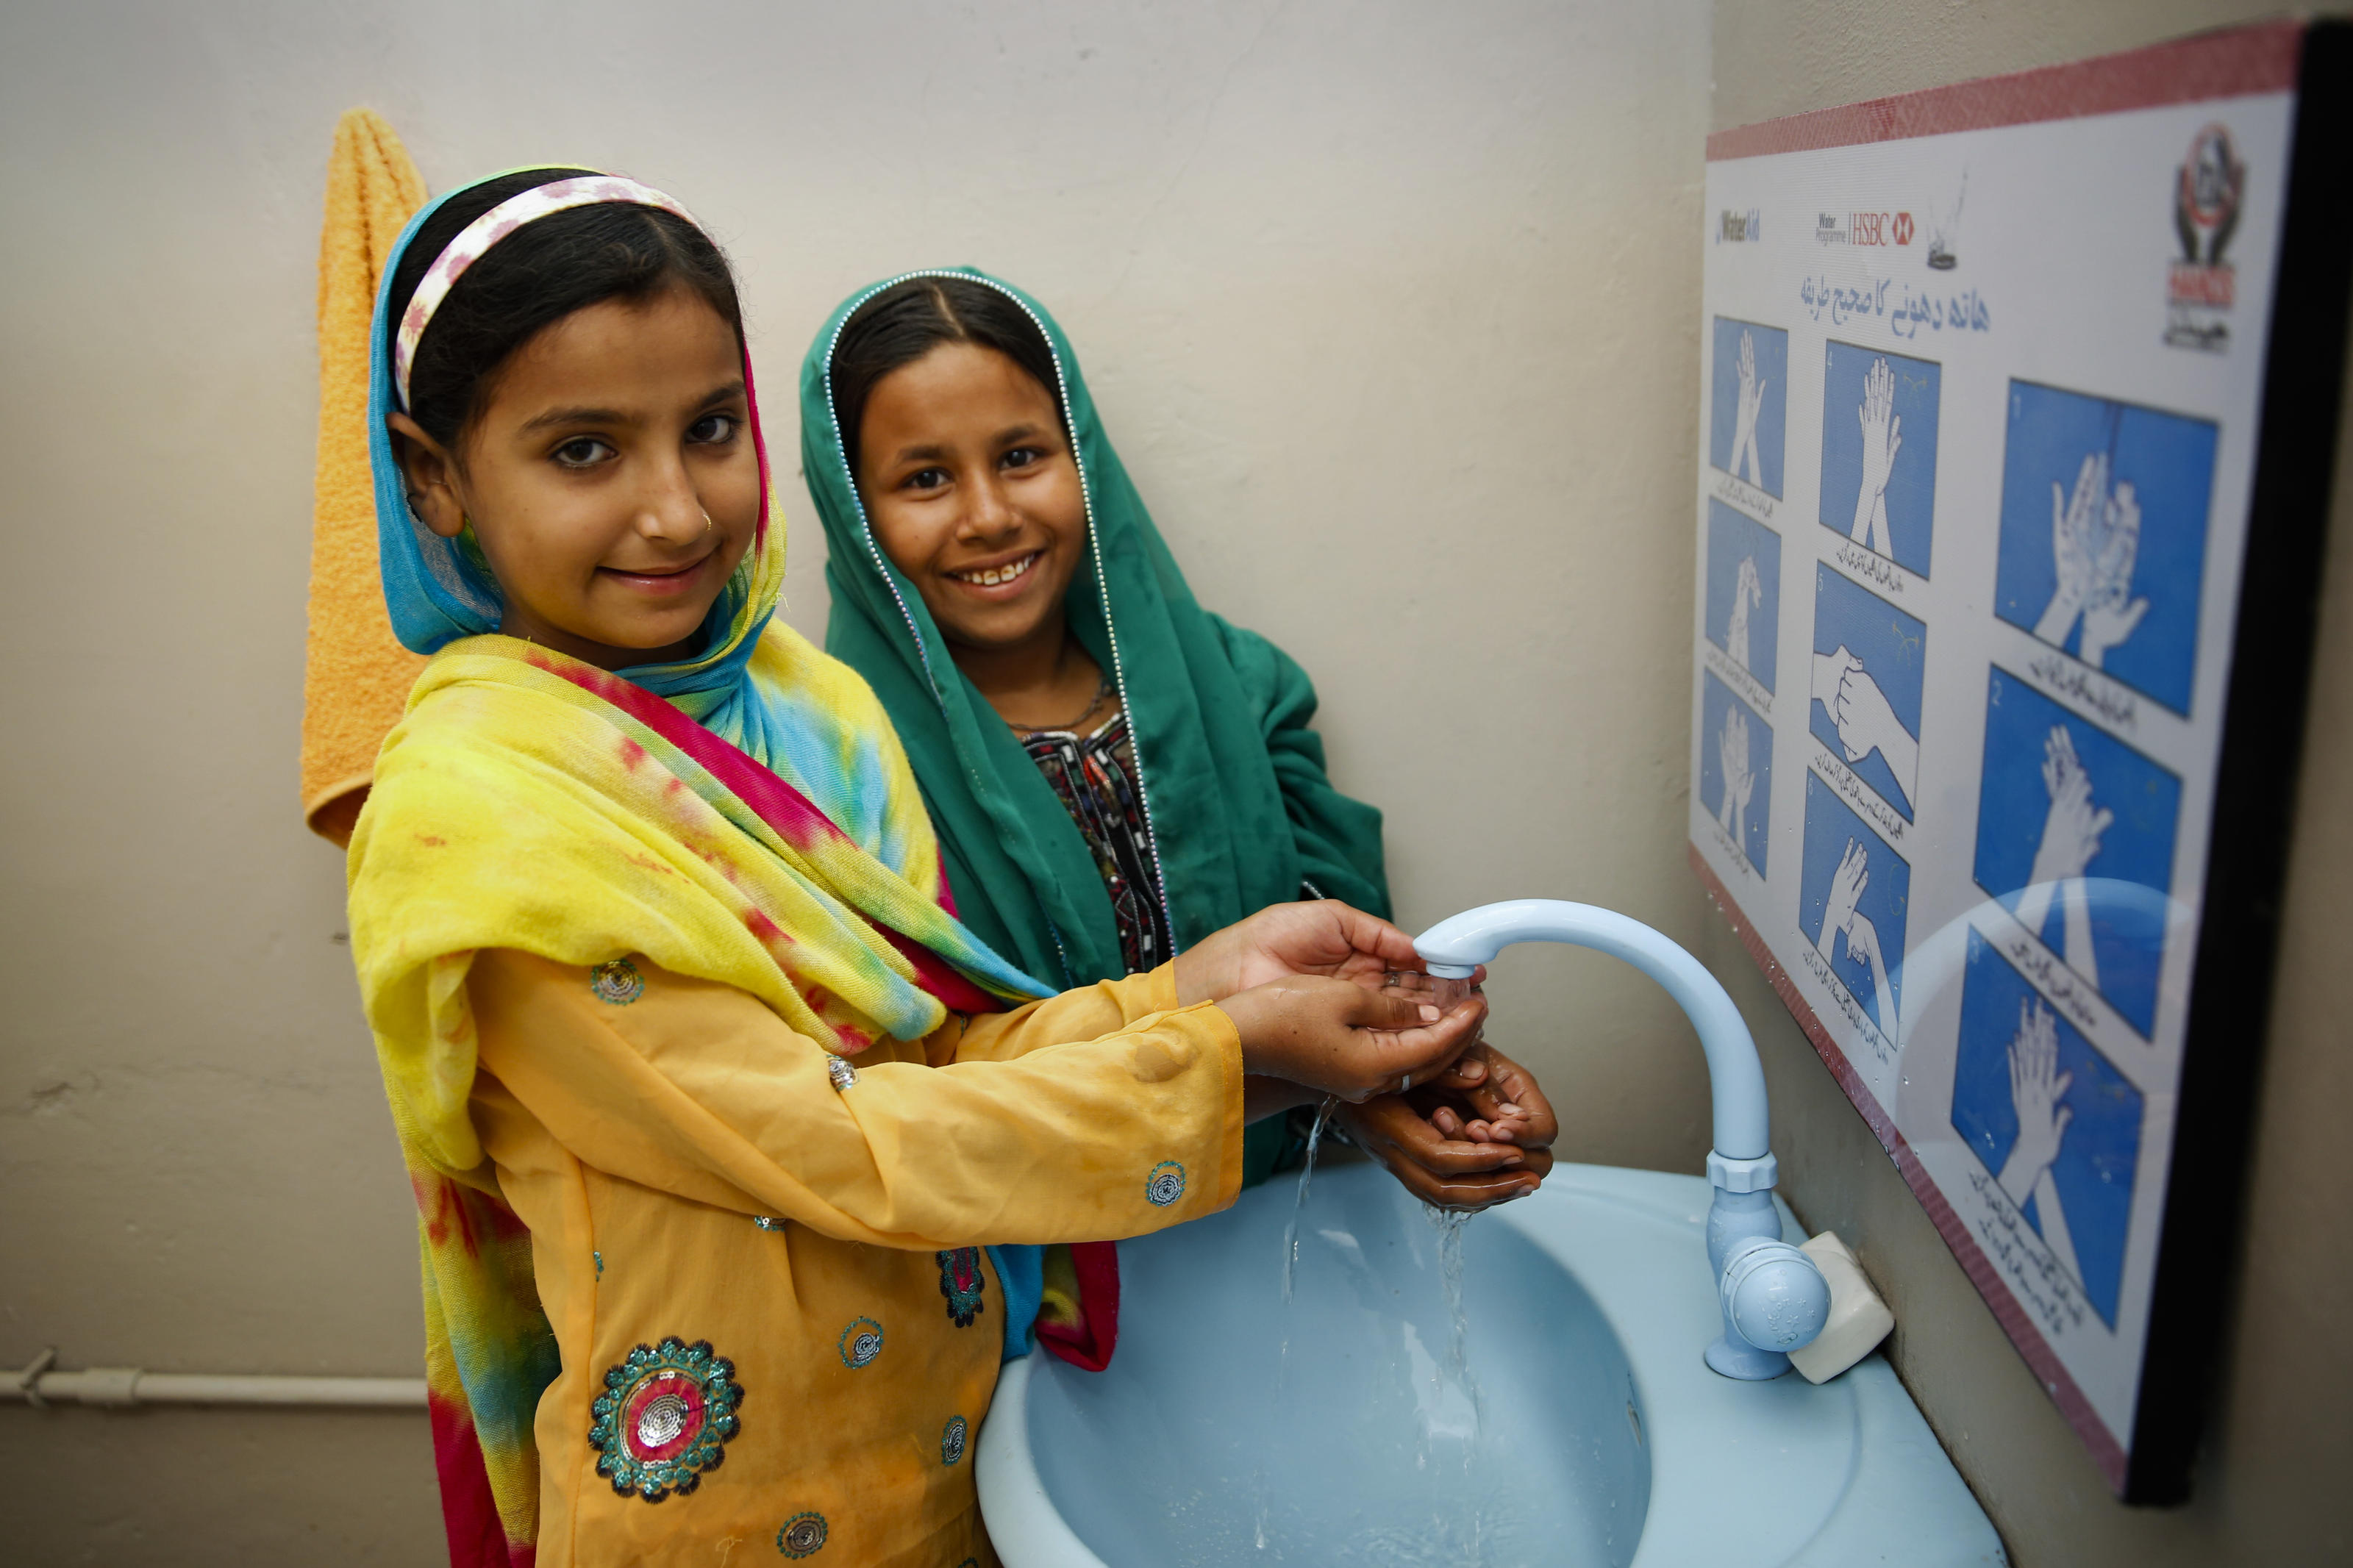 Shazia and Nadia washing their hands with soap at a tap in a newly installed facility in their school in Pakistan